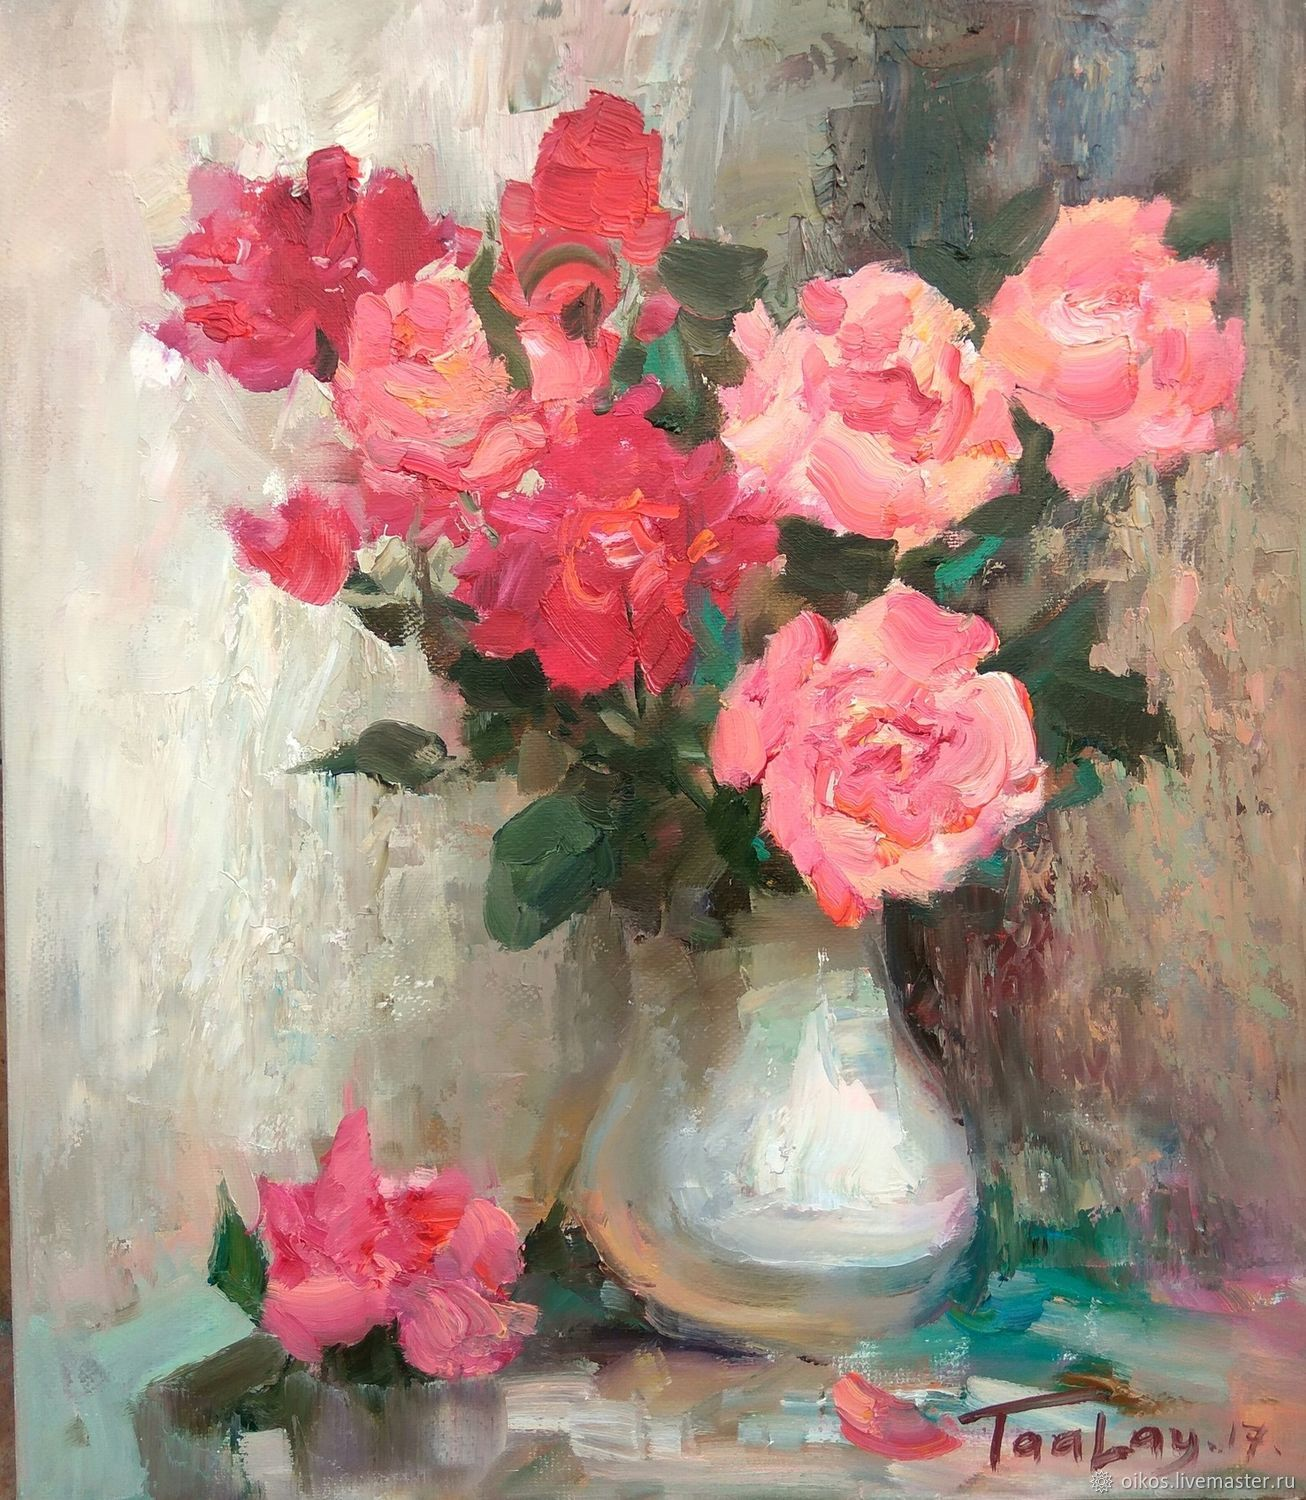 Luxury bouquet in a vase with pink flowers etude the classical flower paintings handmade livemaster handmade buy luxury bouquet in a vase with pink mightylinksfo